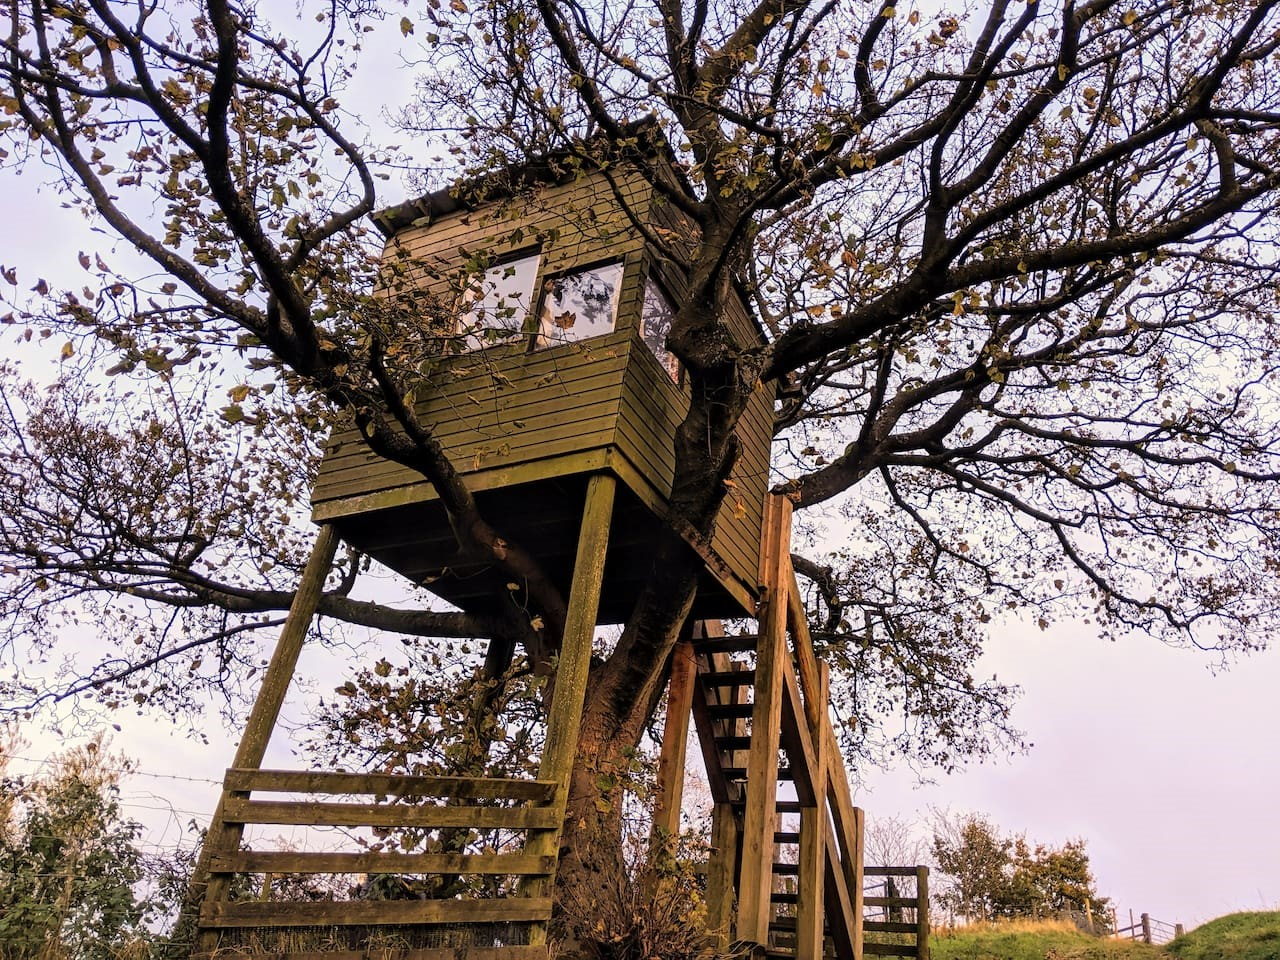 Image of tree house on Cronkshaw Fold Farm for accommodation in Rossendale page on Visit Rossendale website